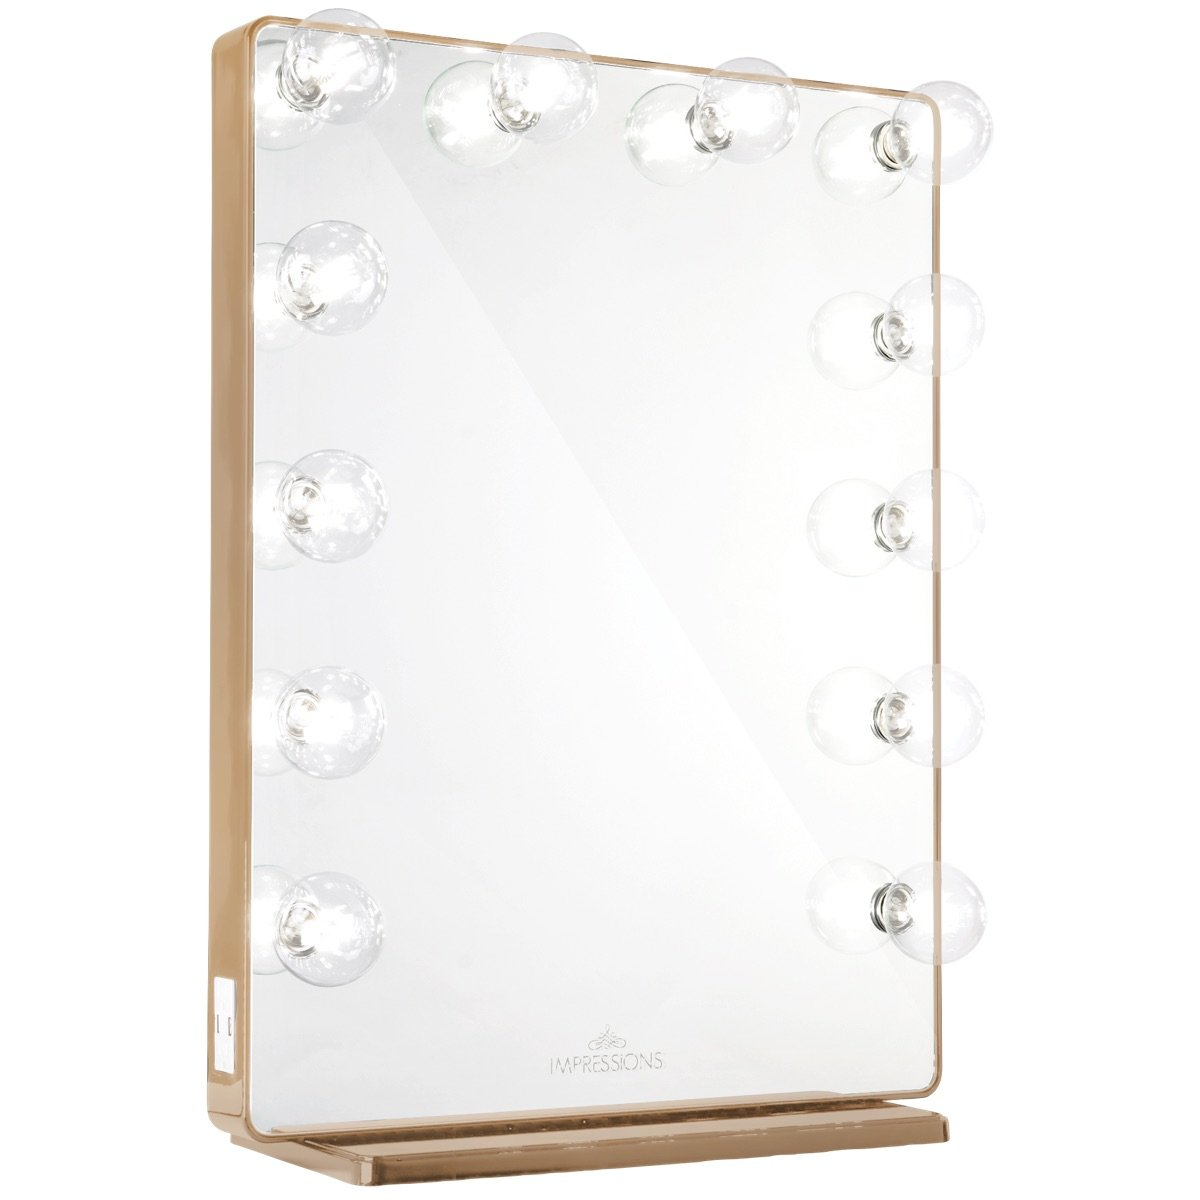 Champagne Gold Vanity Mirror w/ Clear LED Light Bulbs